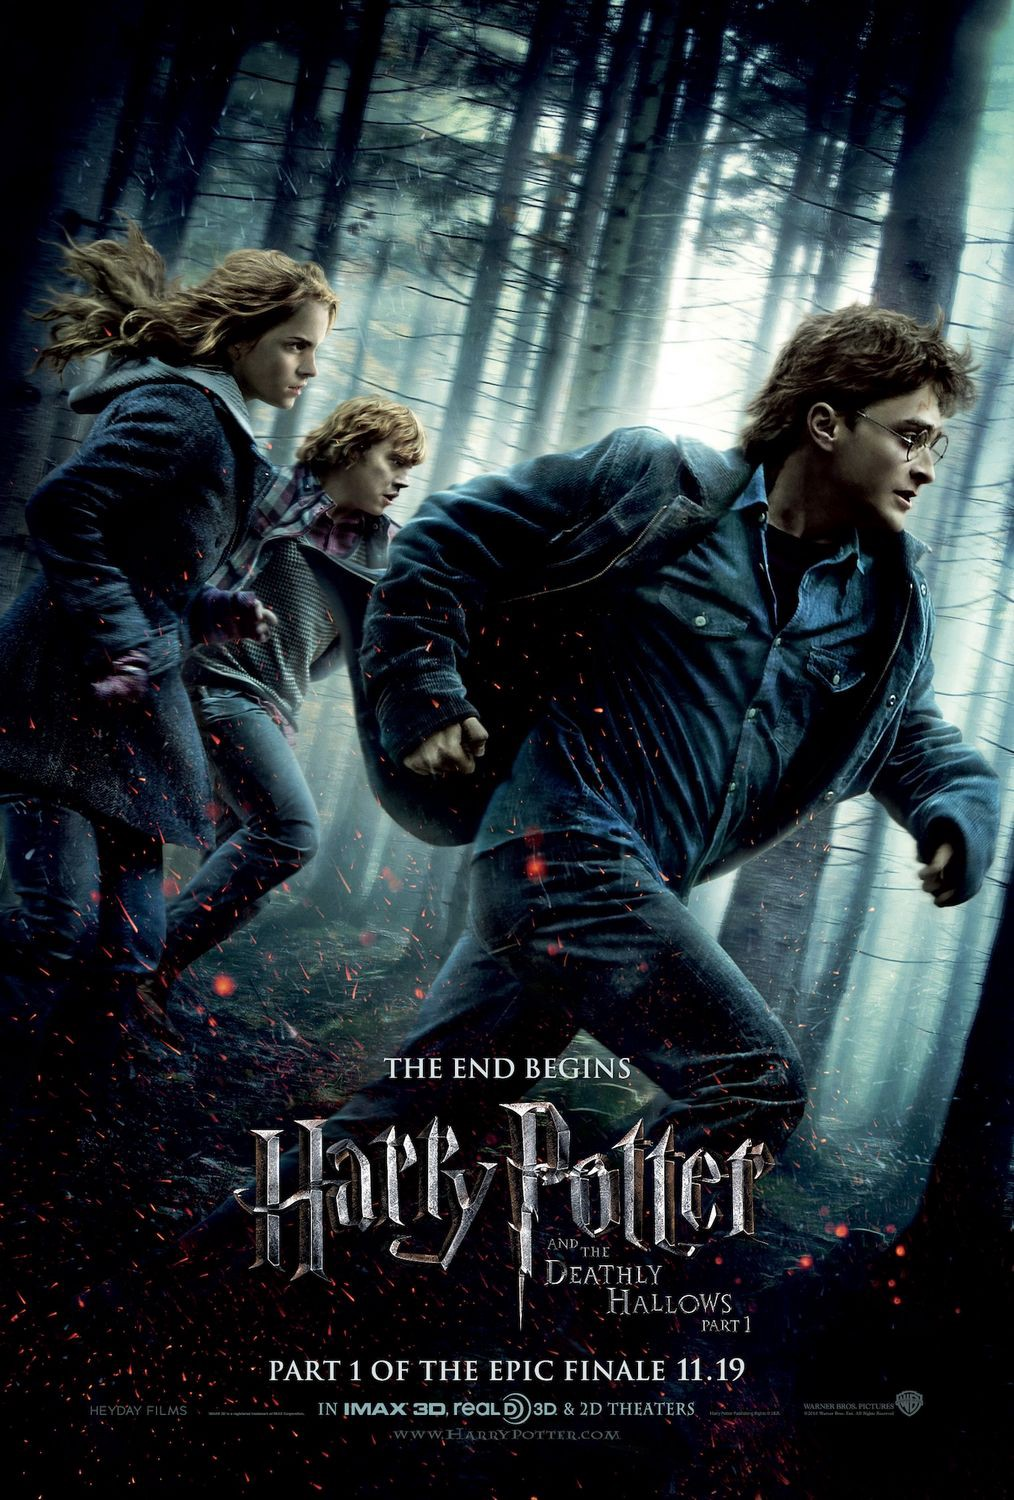 Harry Potter and the Deathly Hallows Part 1 Analysis/Review